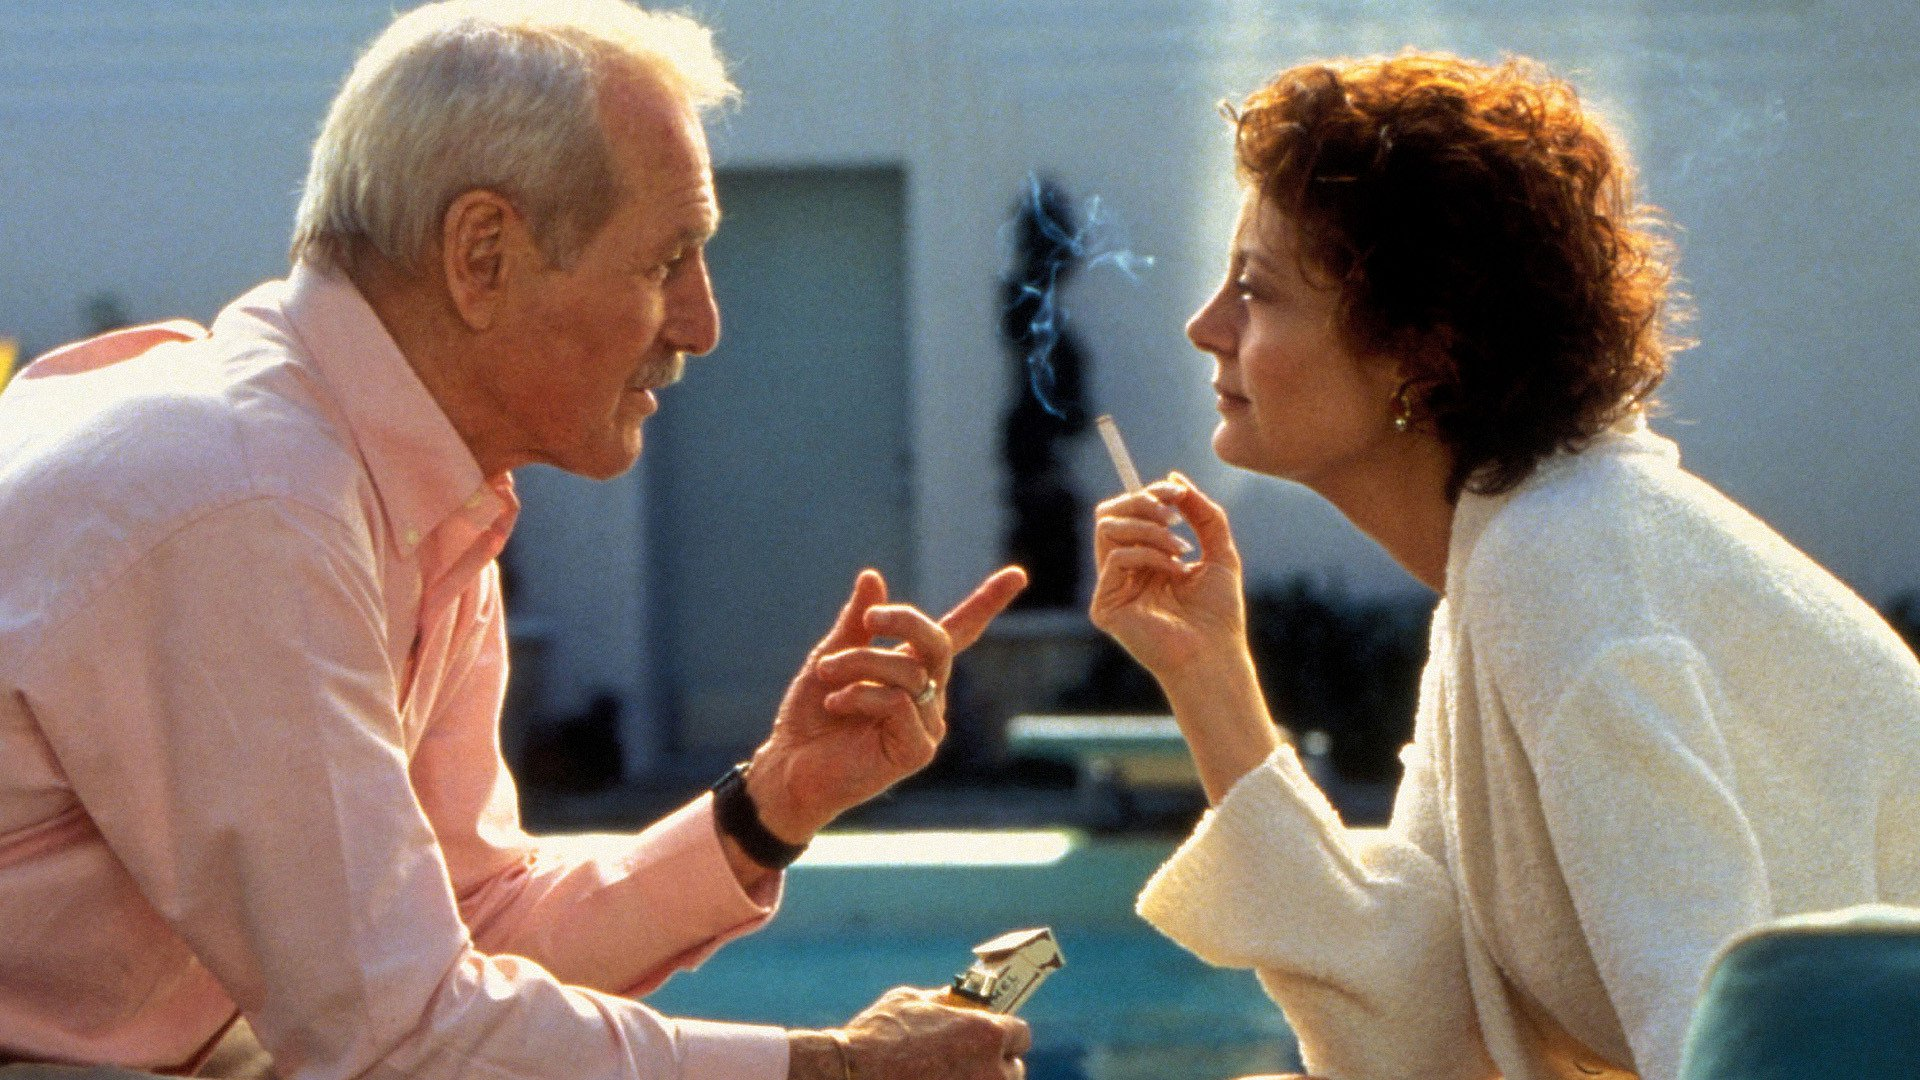 Paul Newman and Susan Sarandon in Twilight